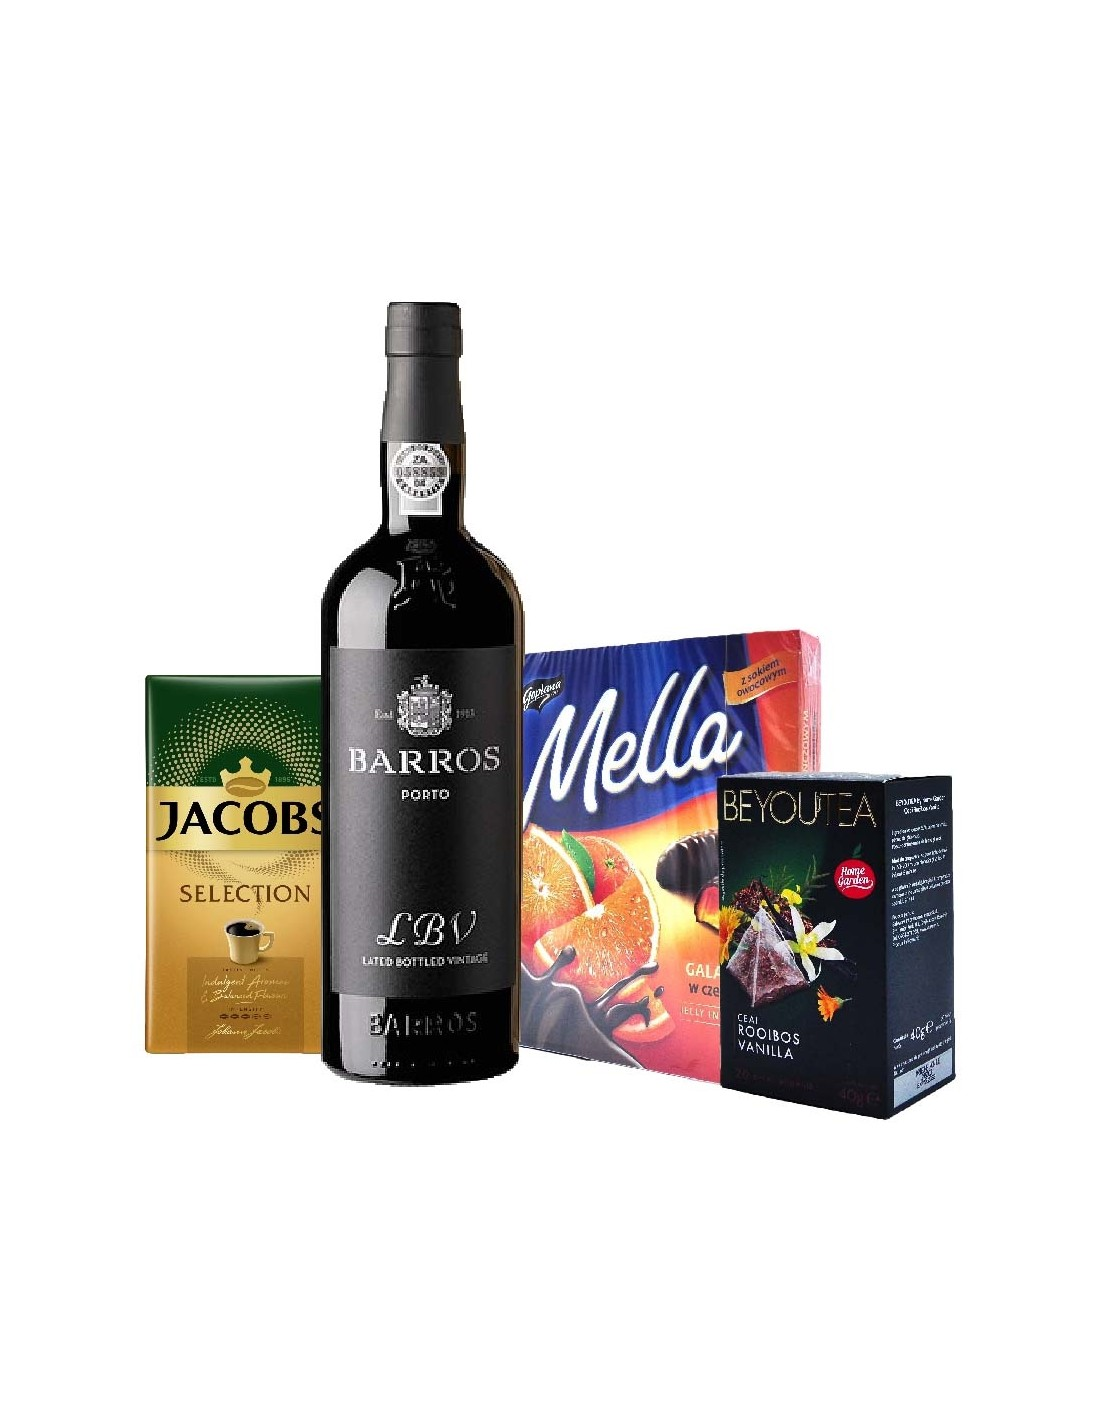 Pachet Barros Delight & Jacobs Selection